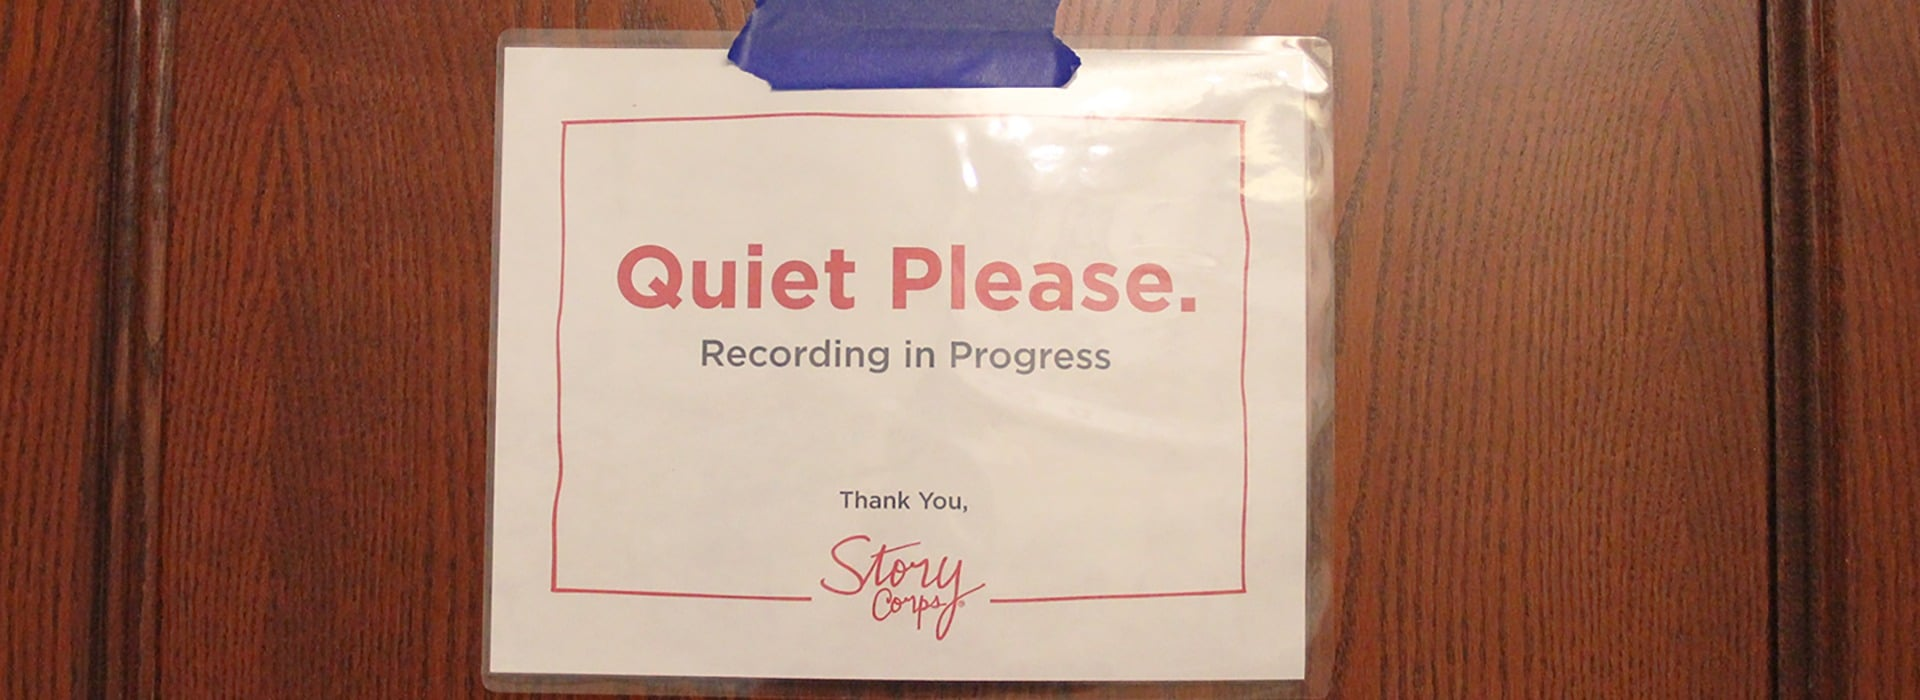 """Sign on a door asks for """"Quiet please"""" while a session is taped"""